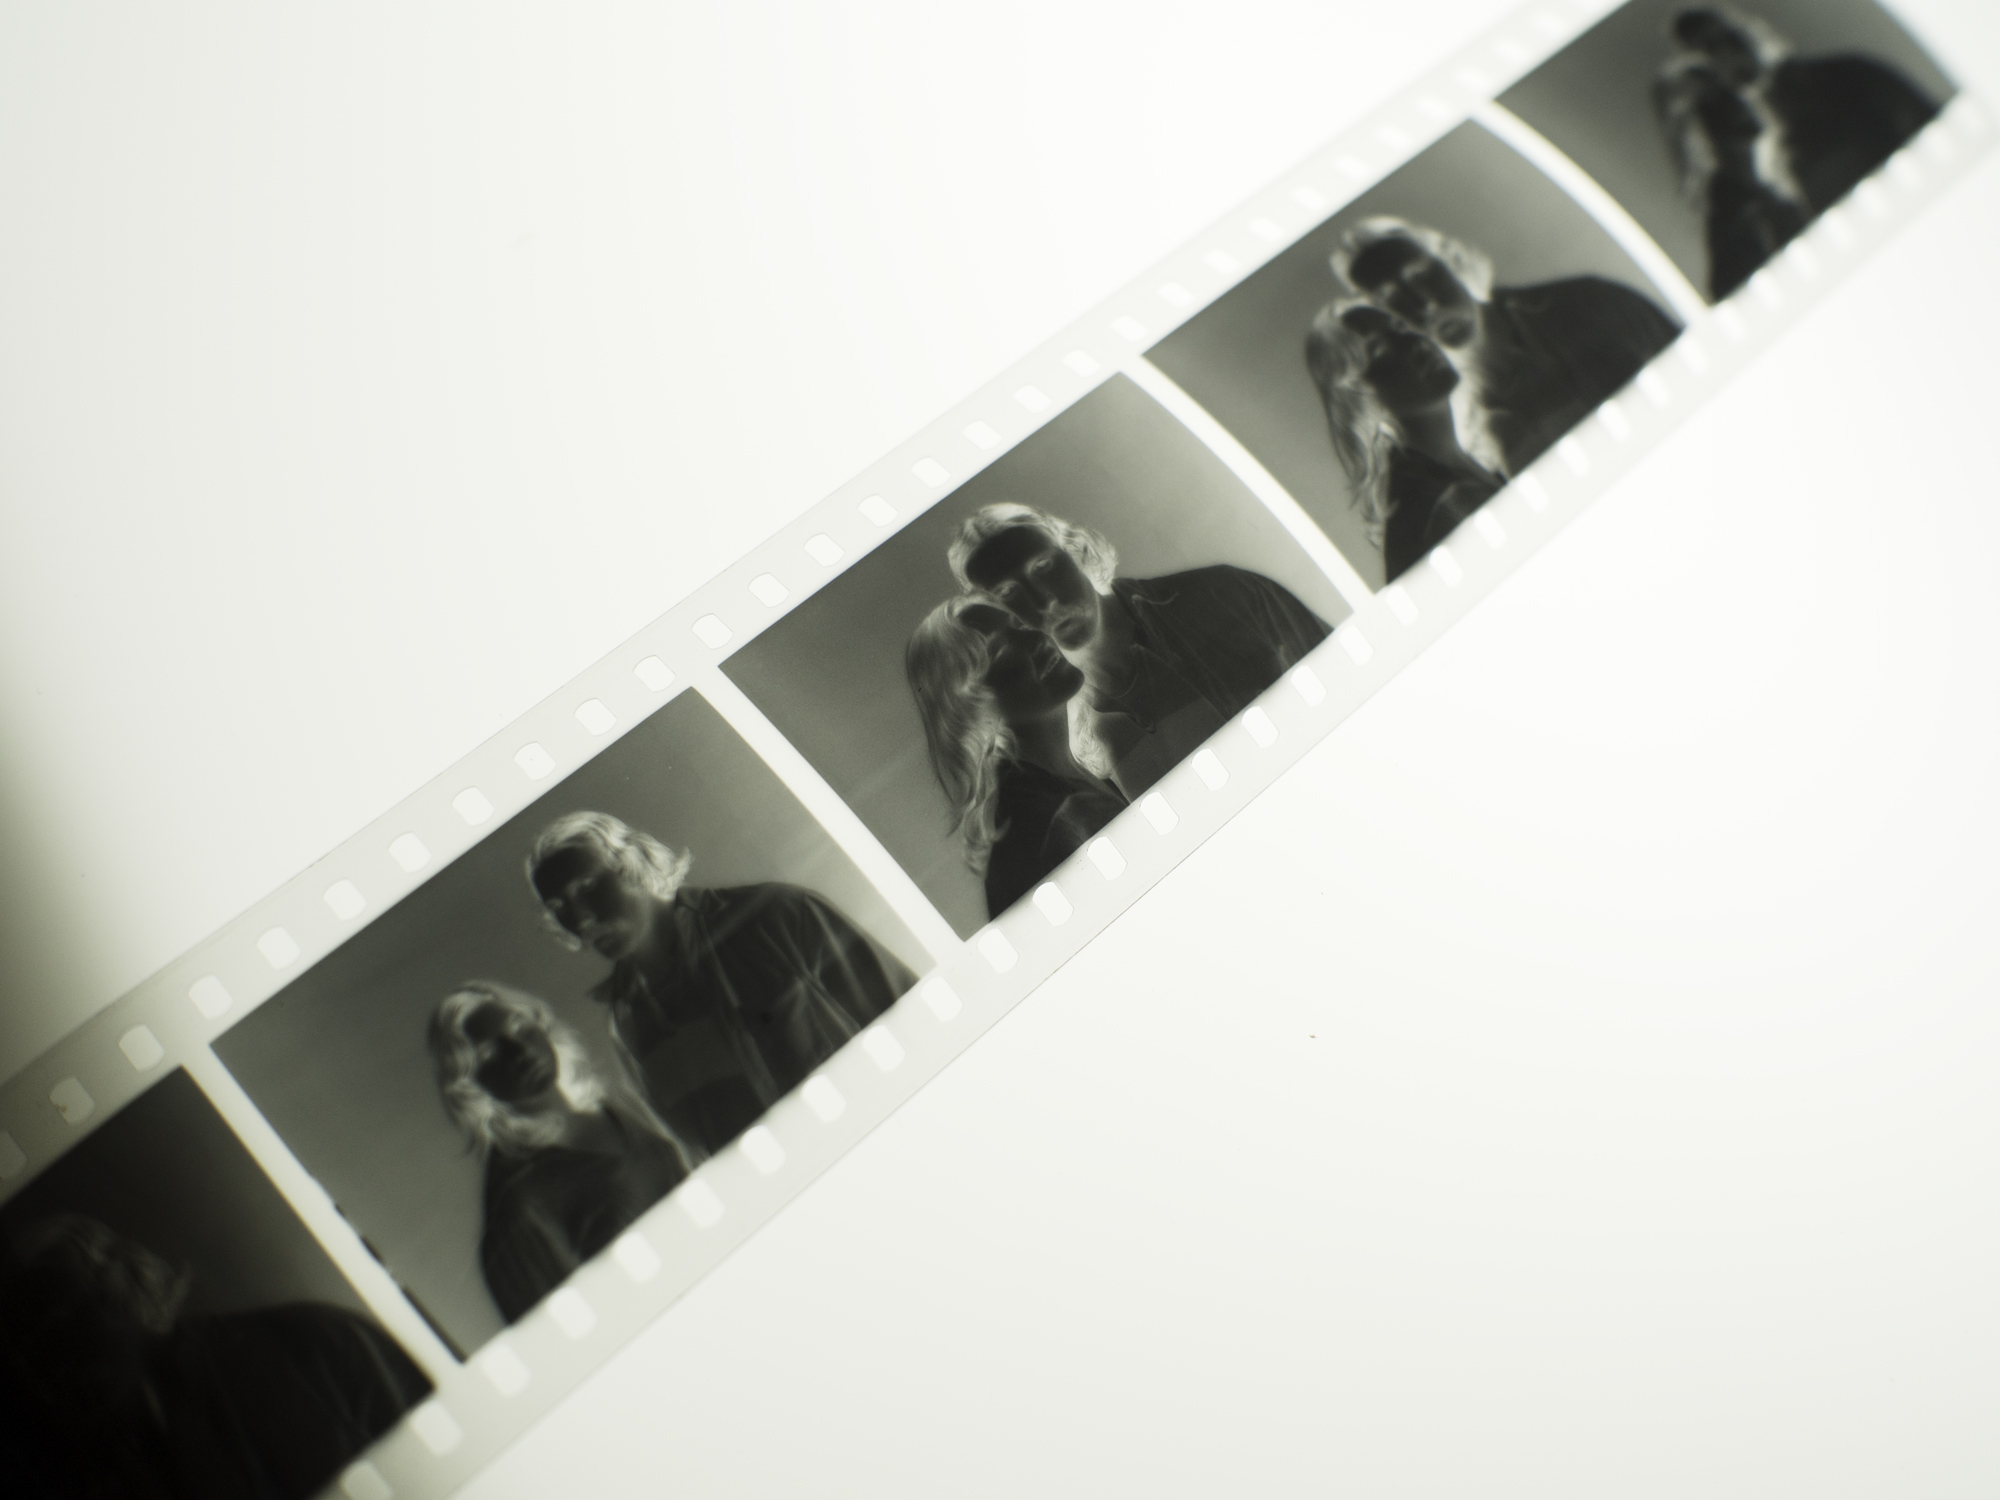 Negatives on the light table.